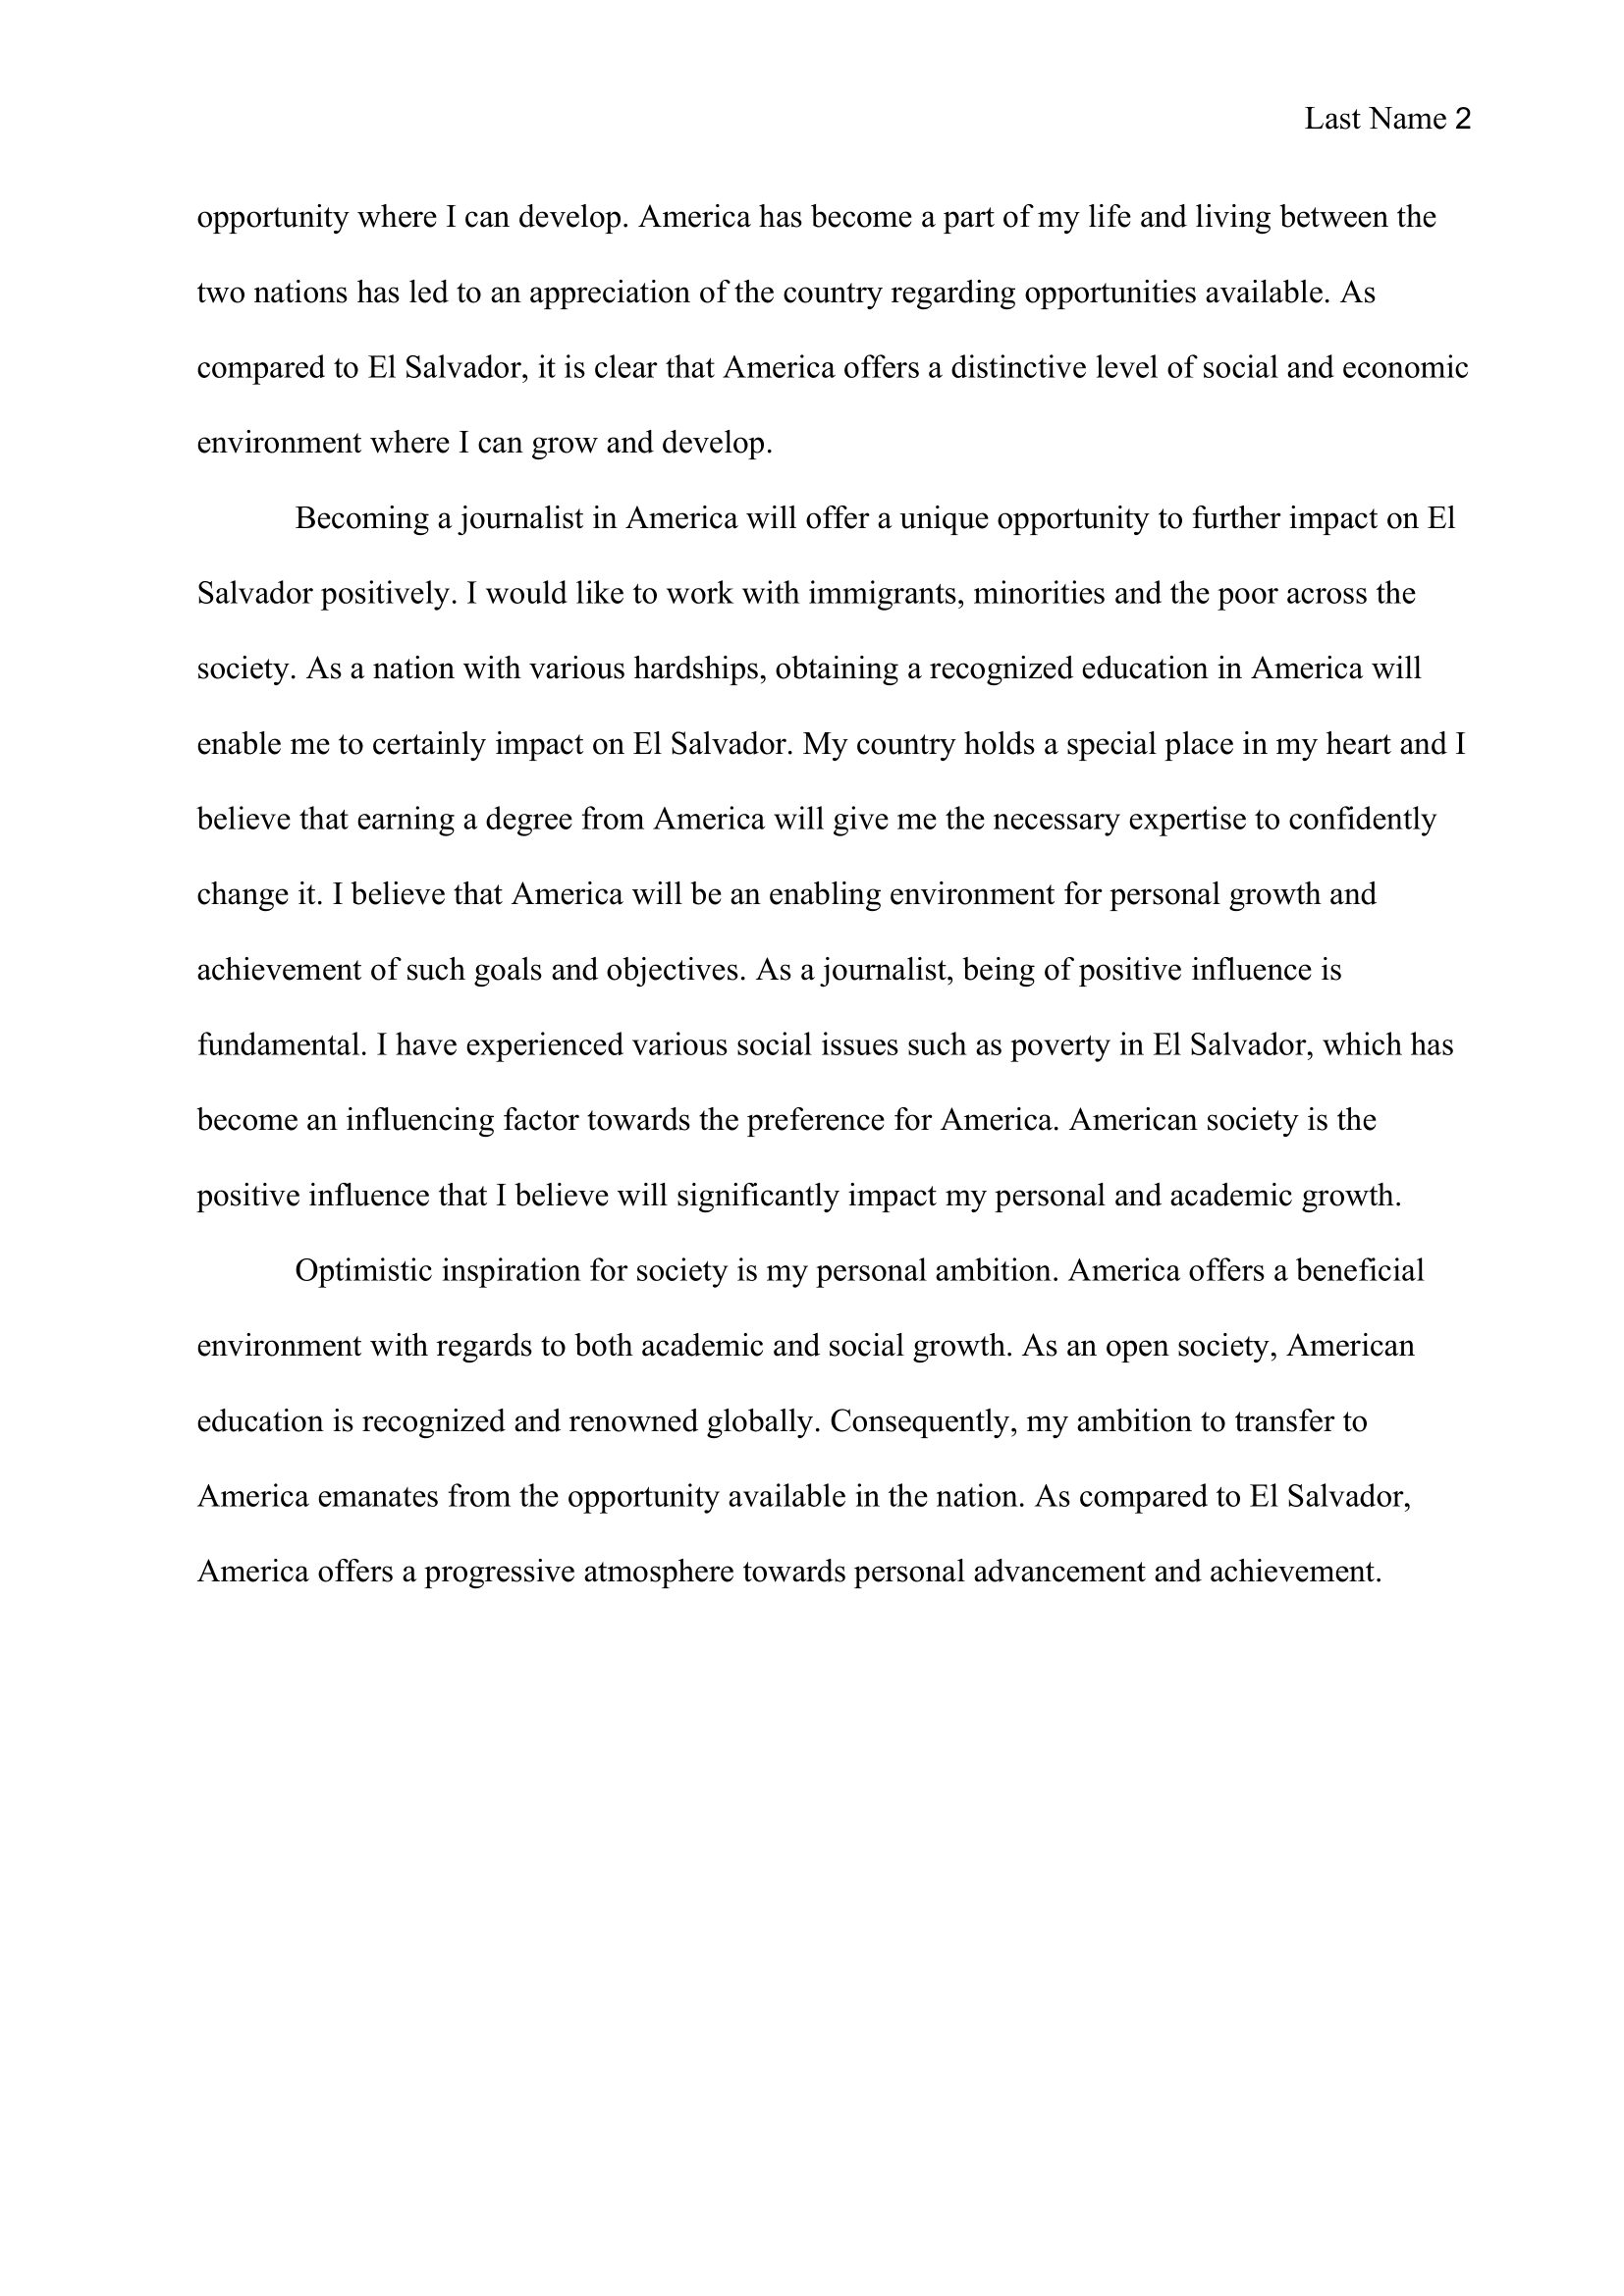 Why I Want To Transfer Essay Examples 2